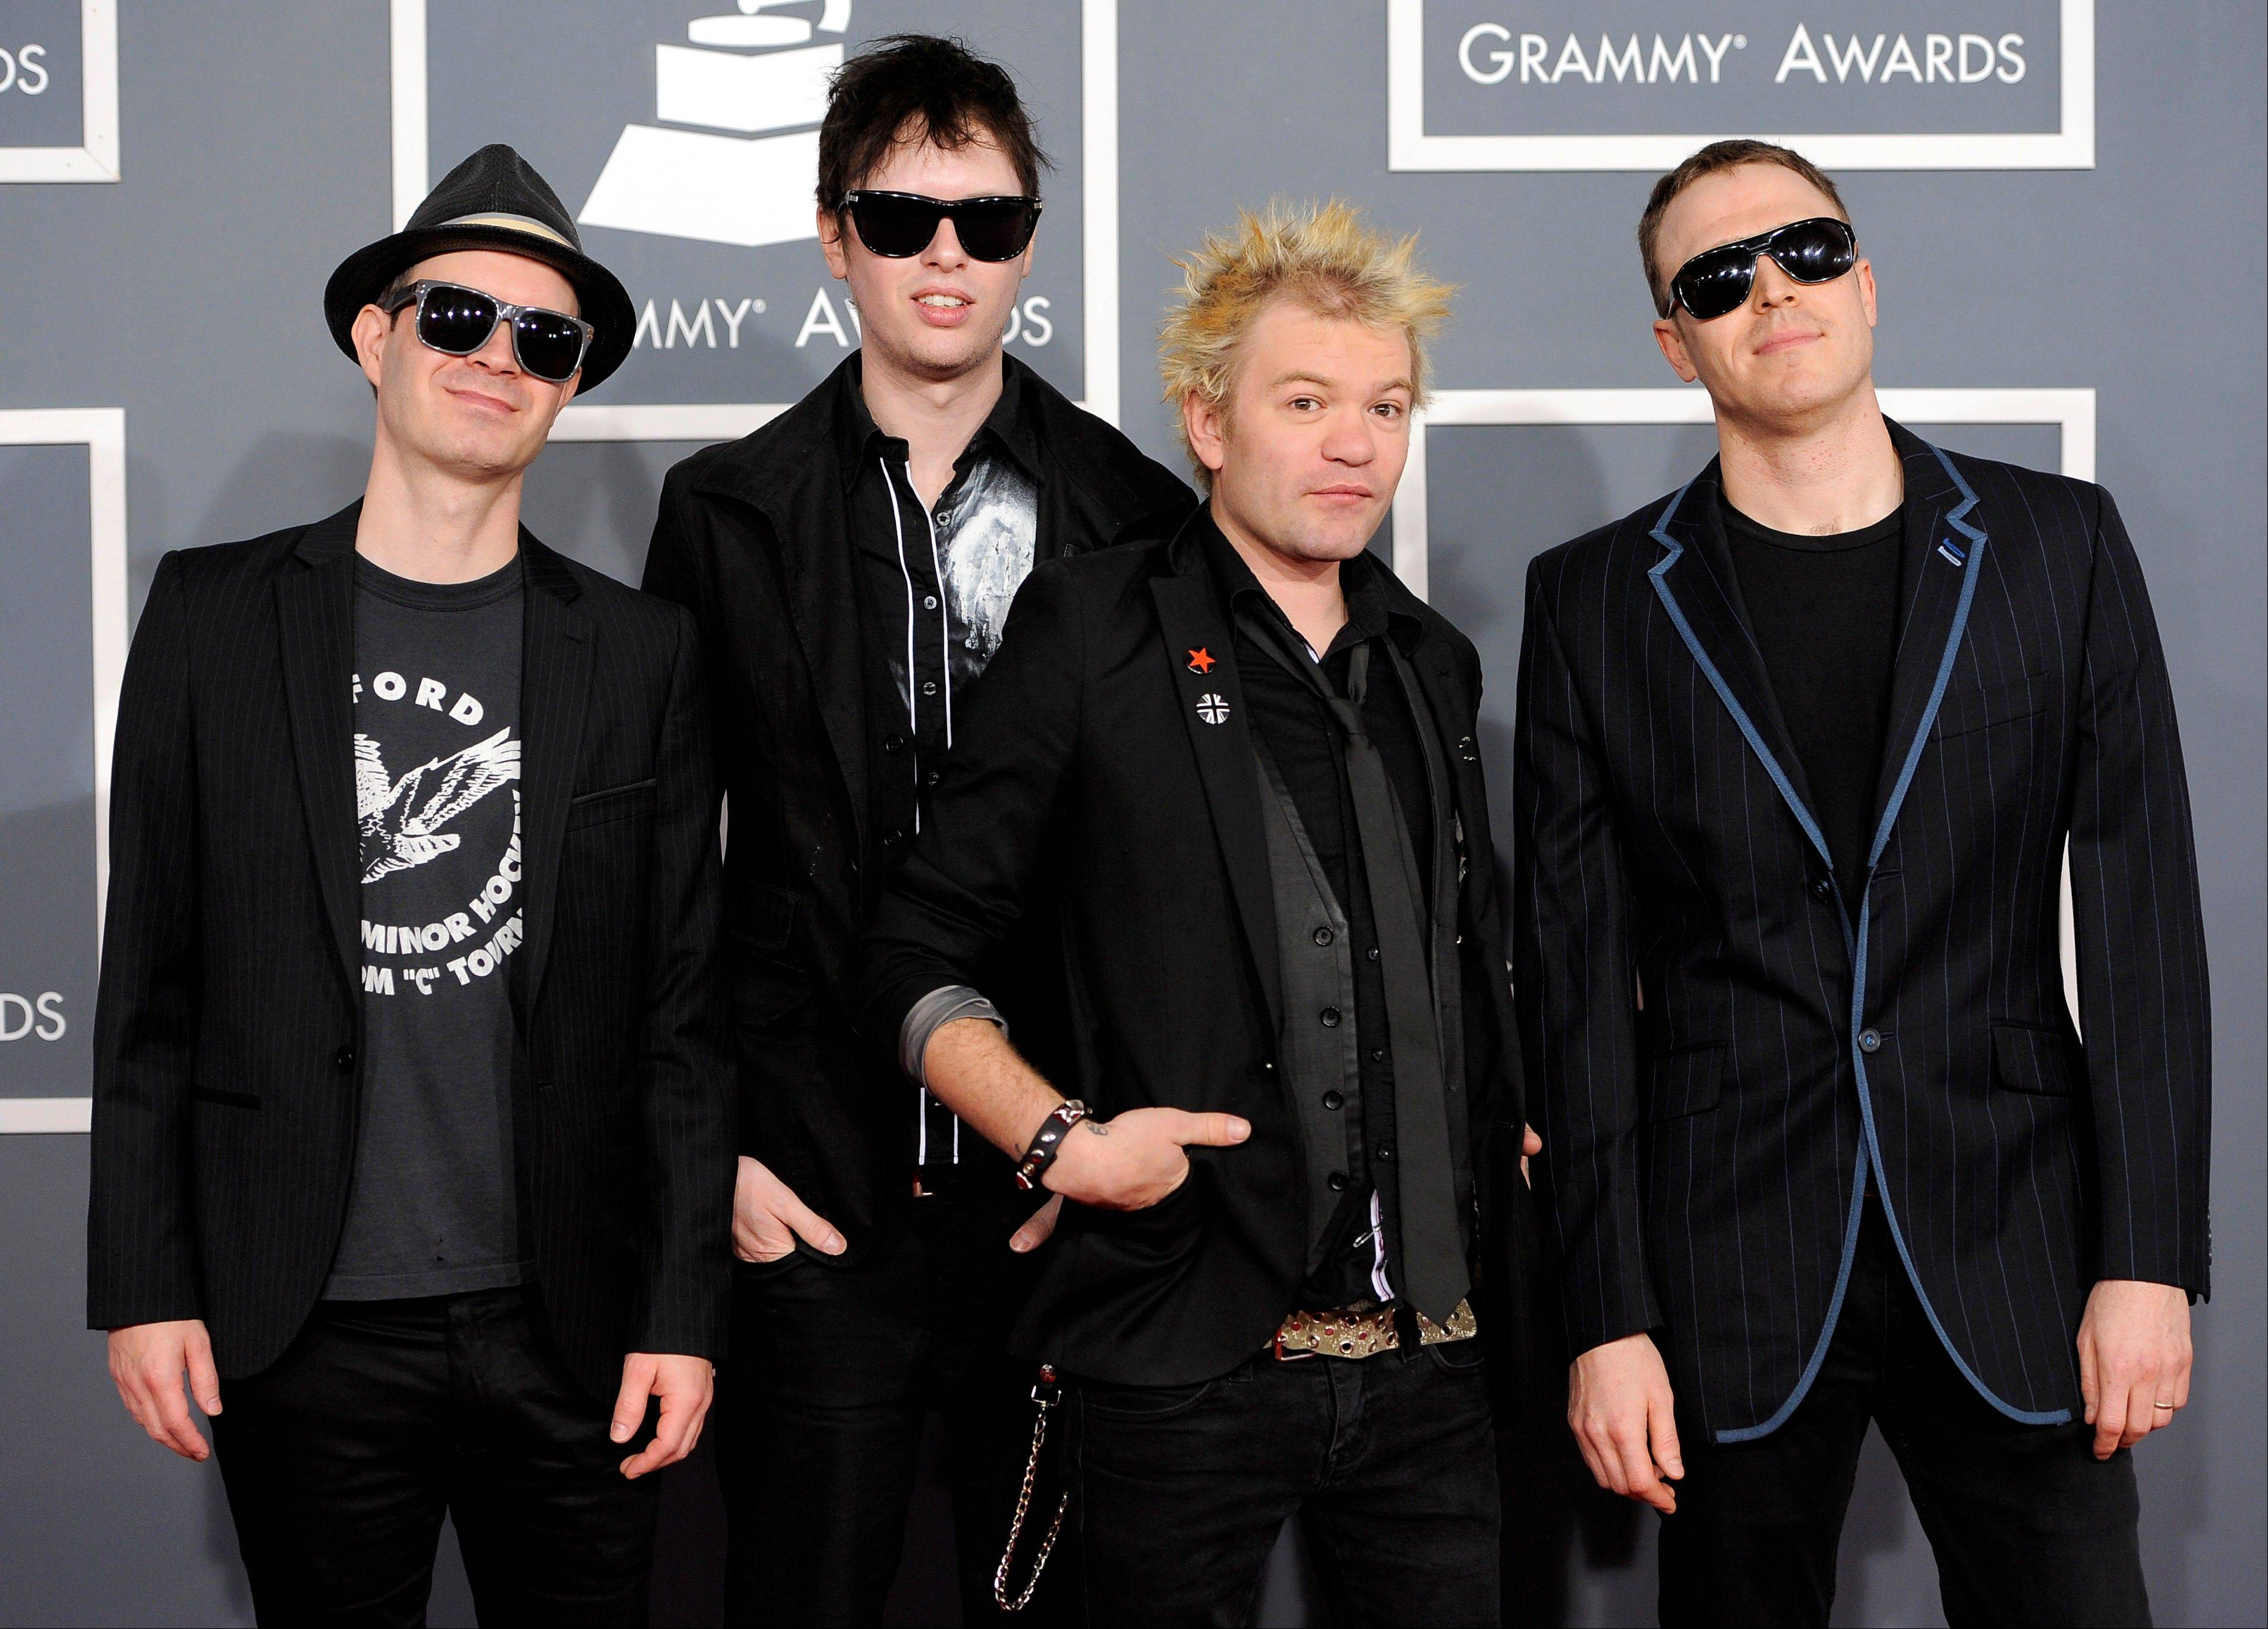 The band Sum 41 arrives Sunday at the 54th annual Grammy Awards in Los Angeles.